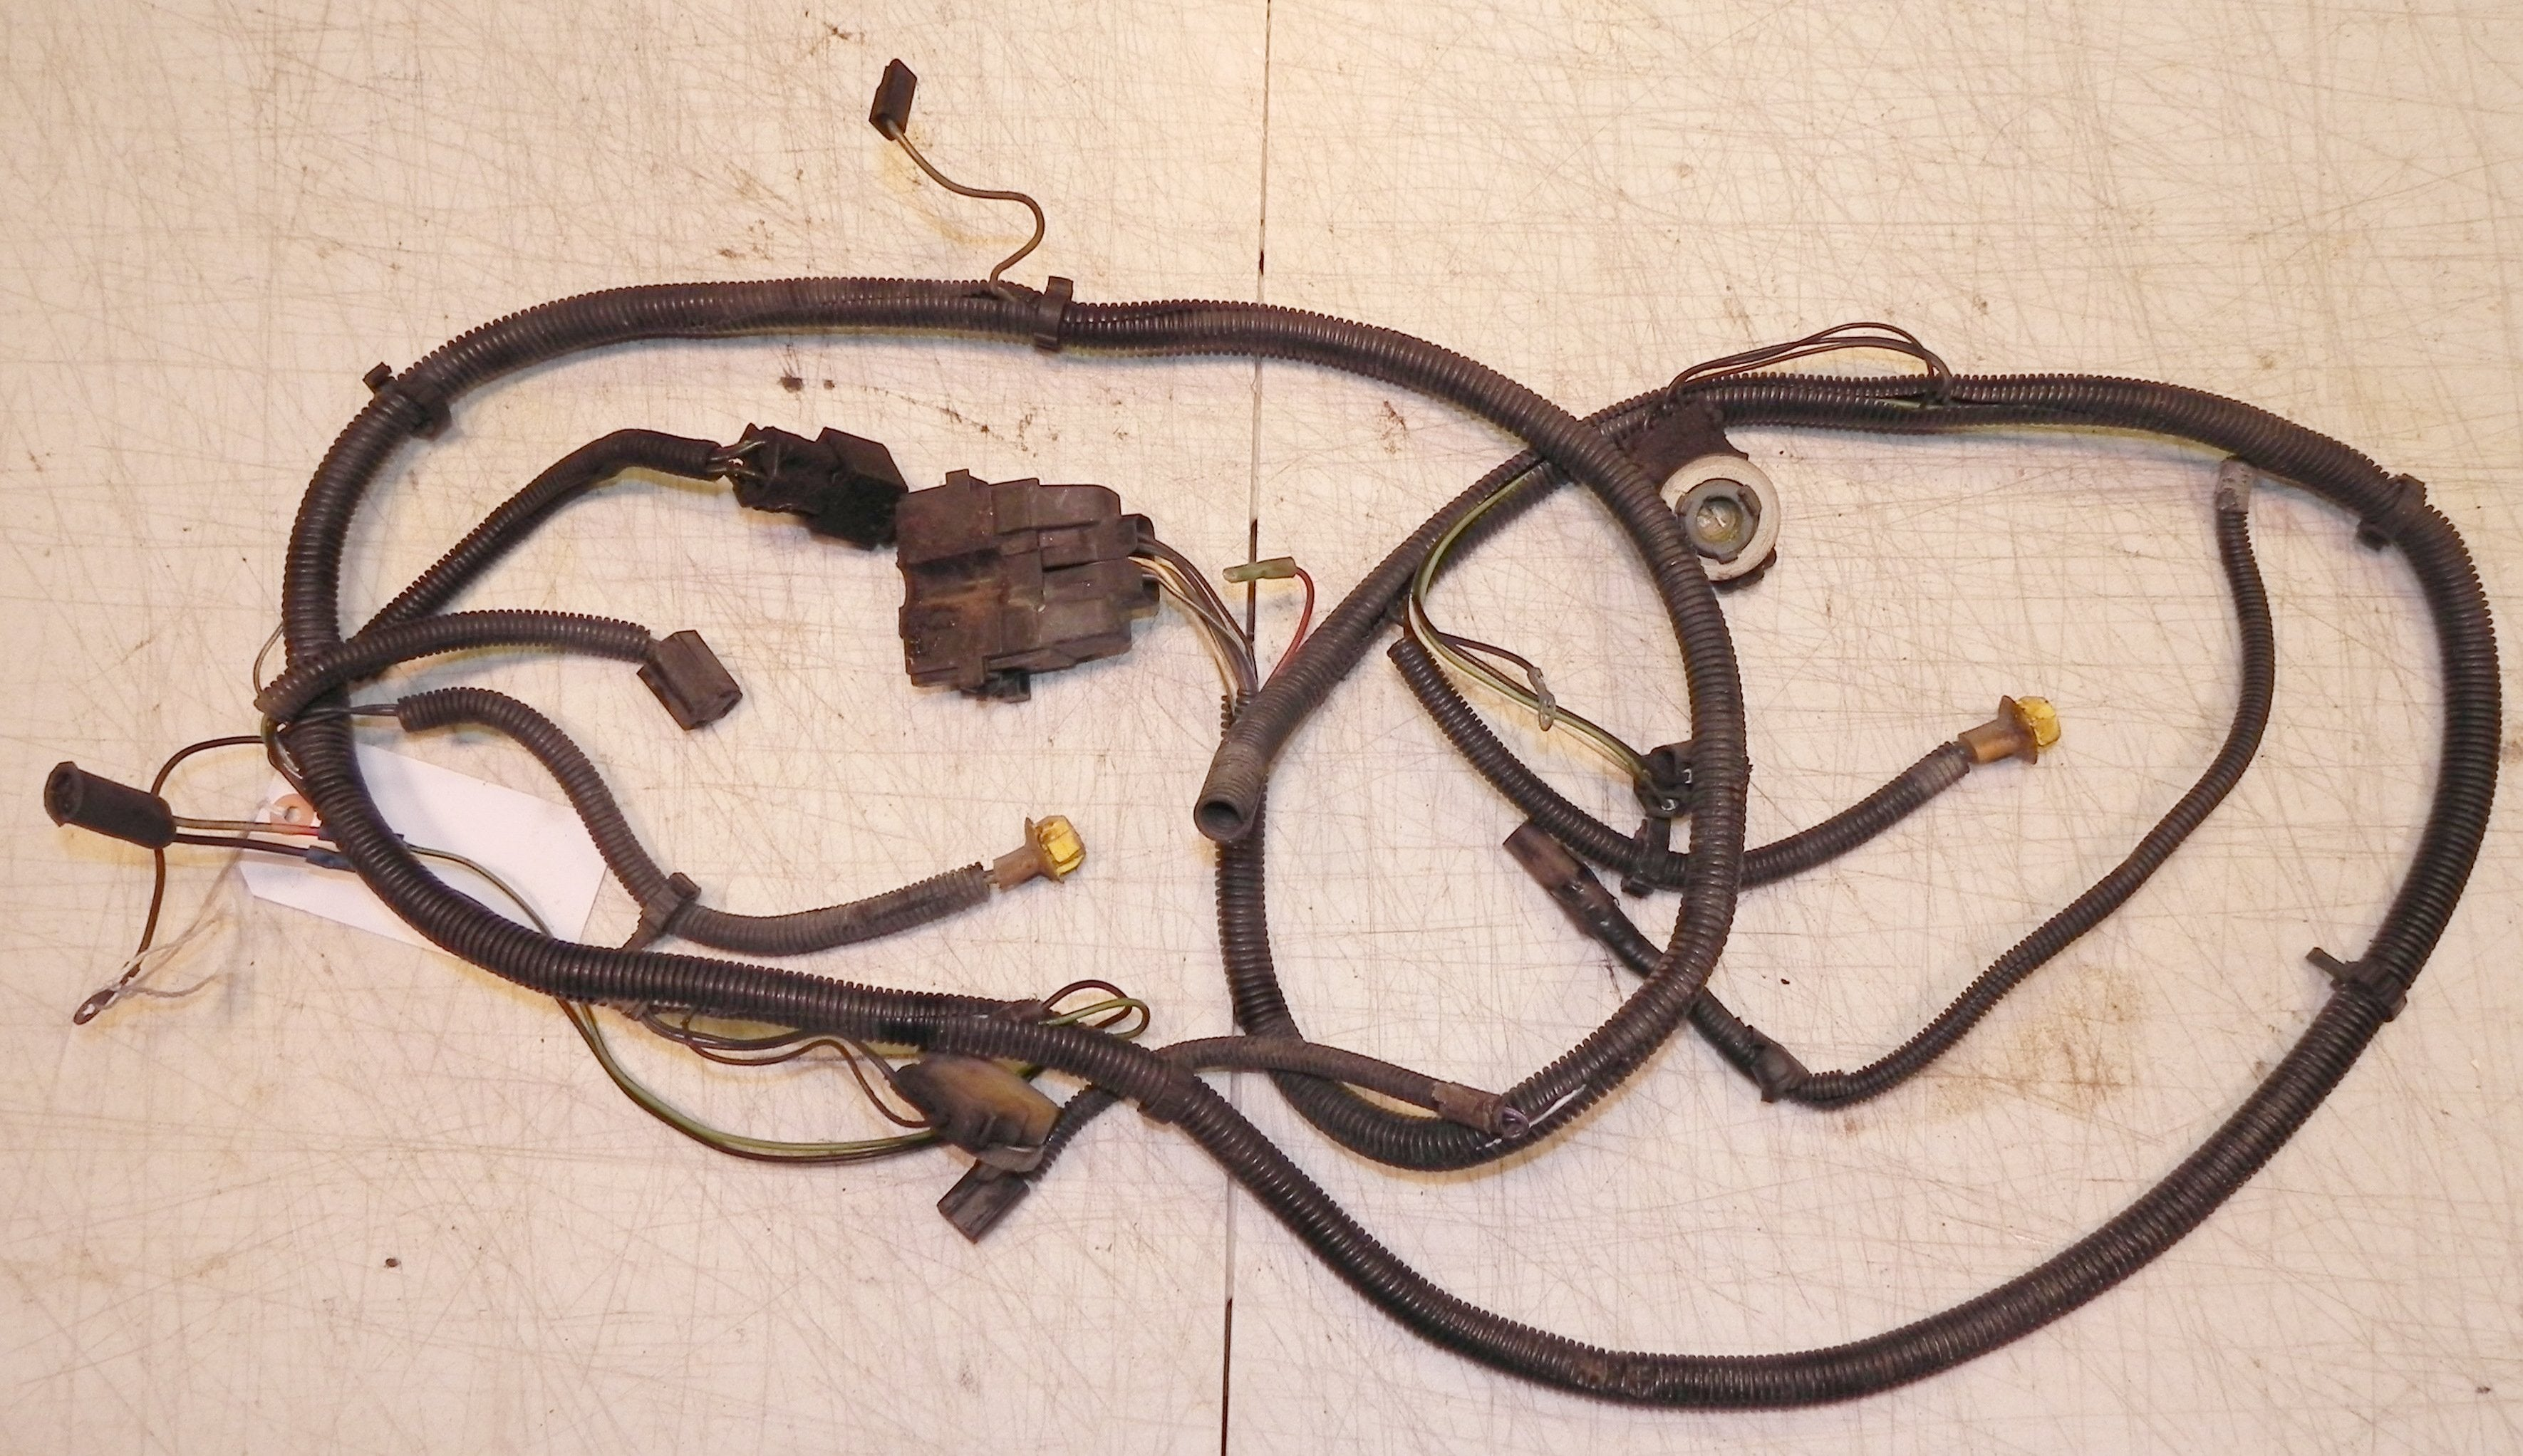 Jeep Wrangler YJ Front Headlight Grill Wiring Harness 87-90 - Jeep on jk wire harness, wrangler wire harness, gm wire harness, ez wire harness, cj5 wire harness, el wire harness,